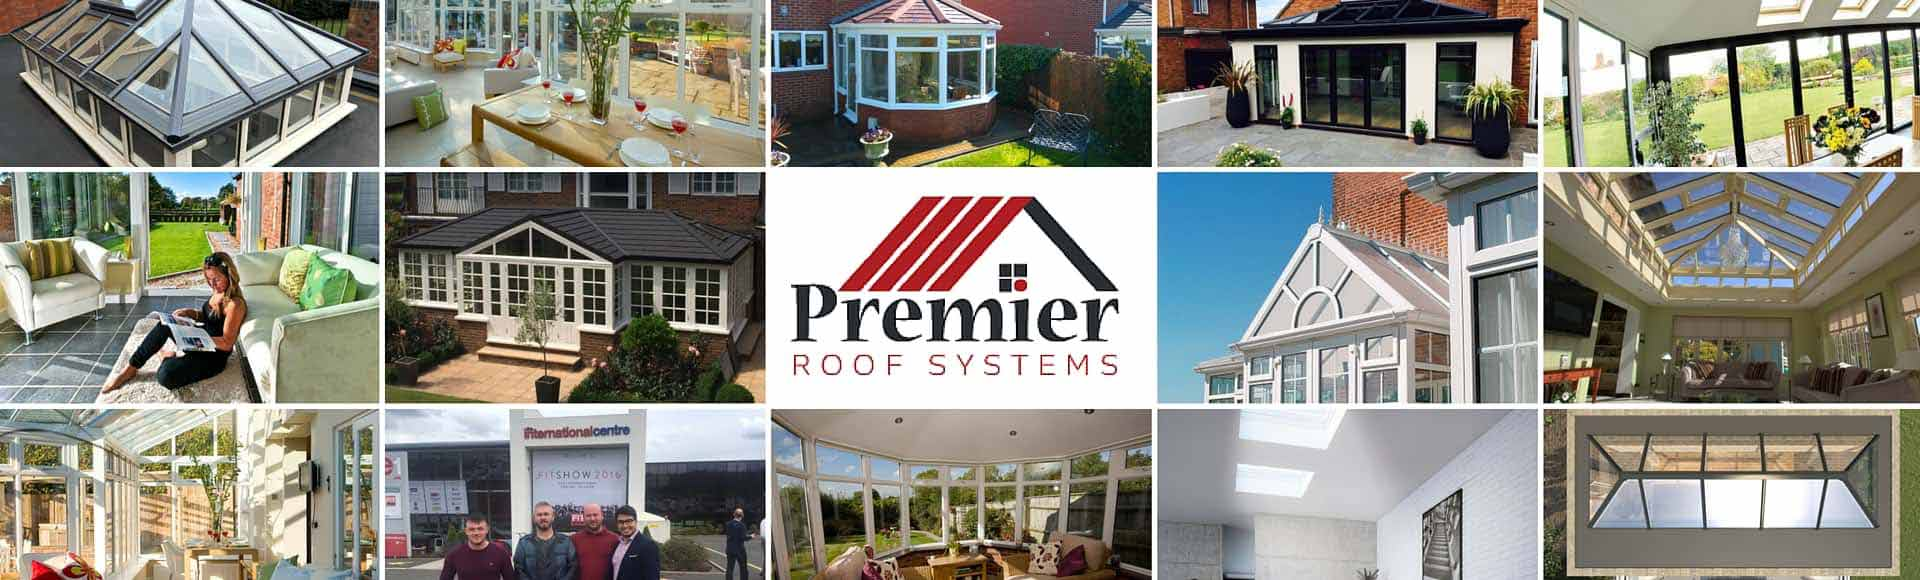 Premier Roof Systems - Our Product Range